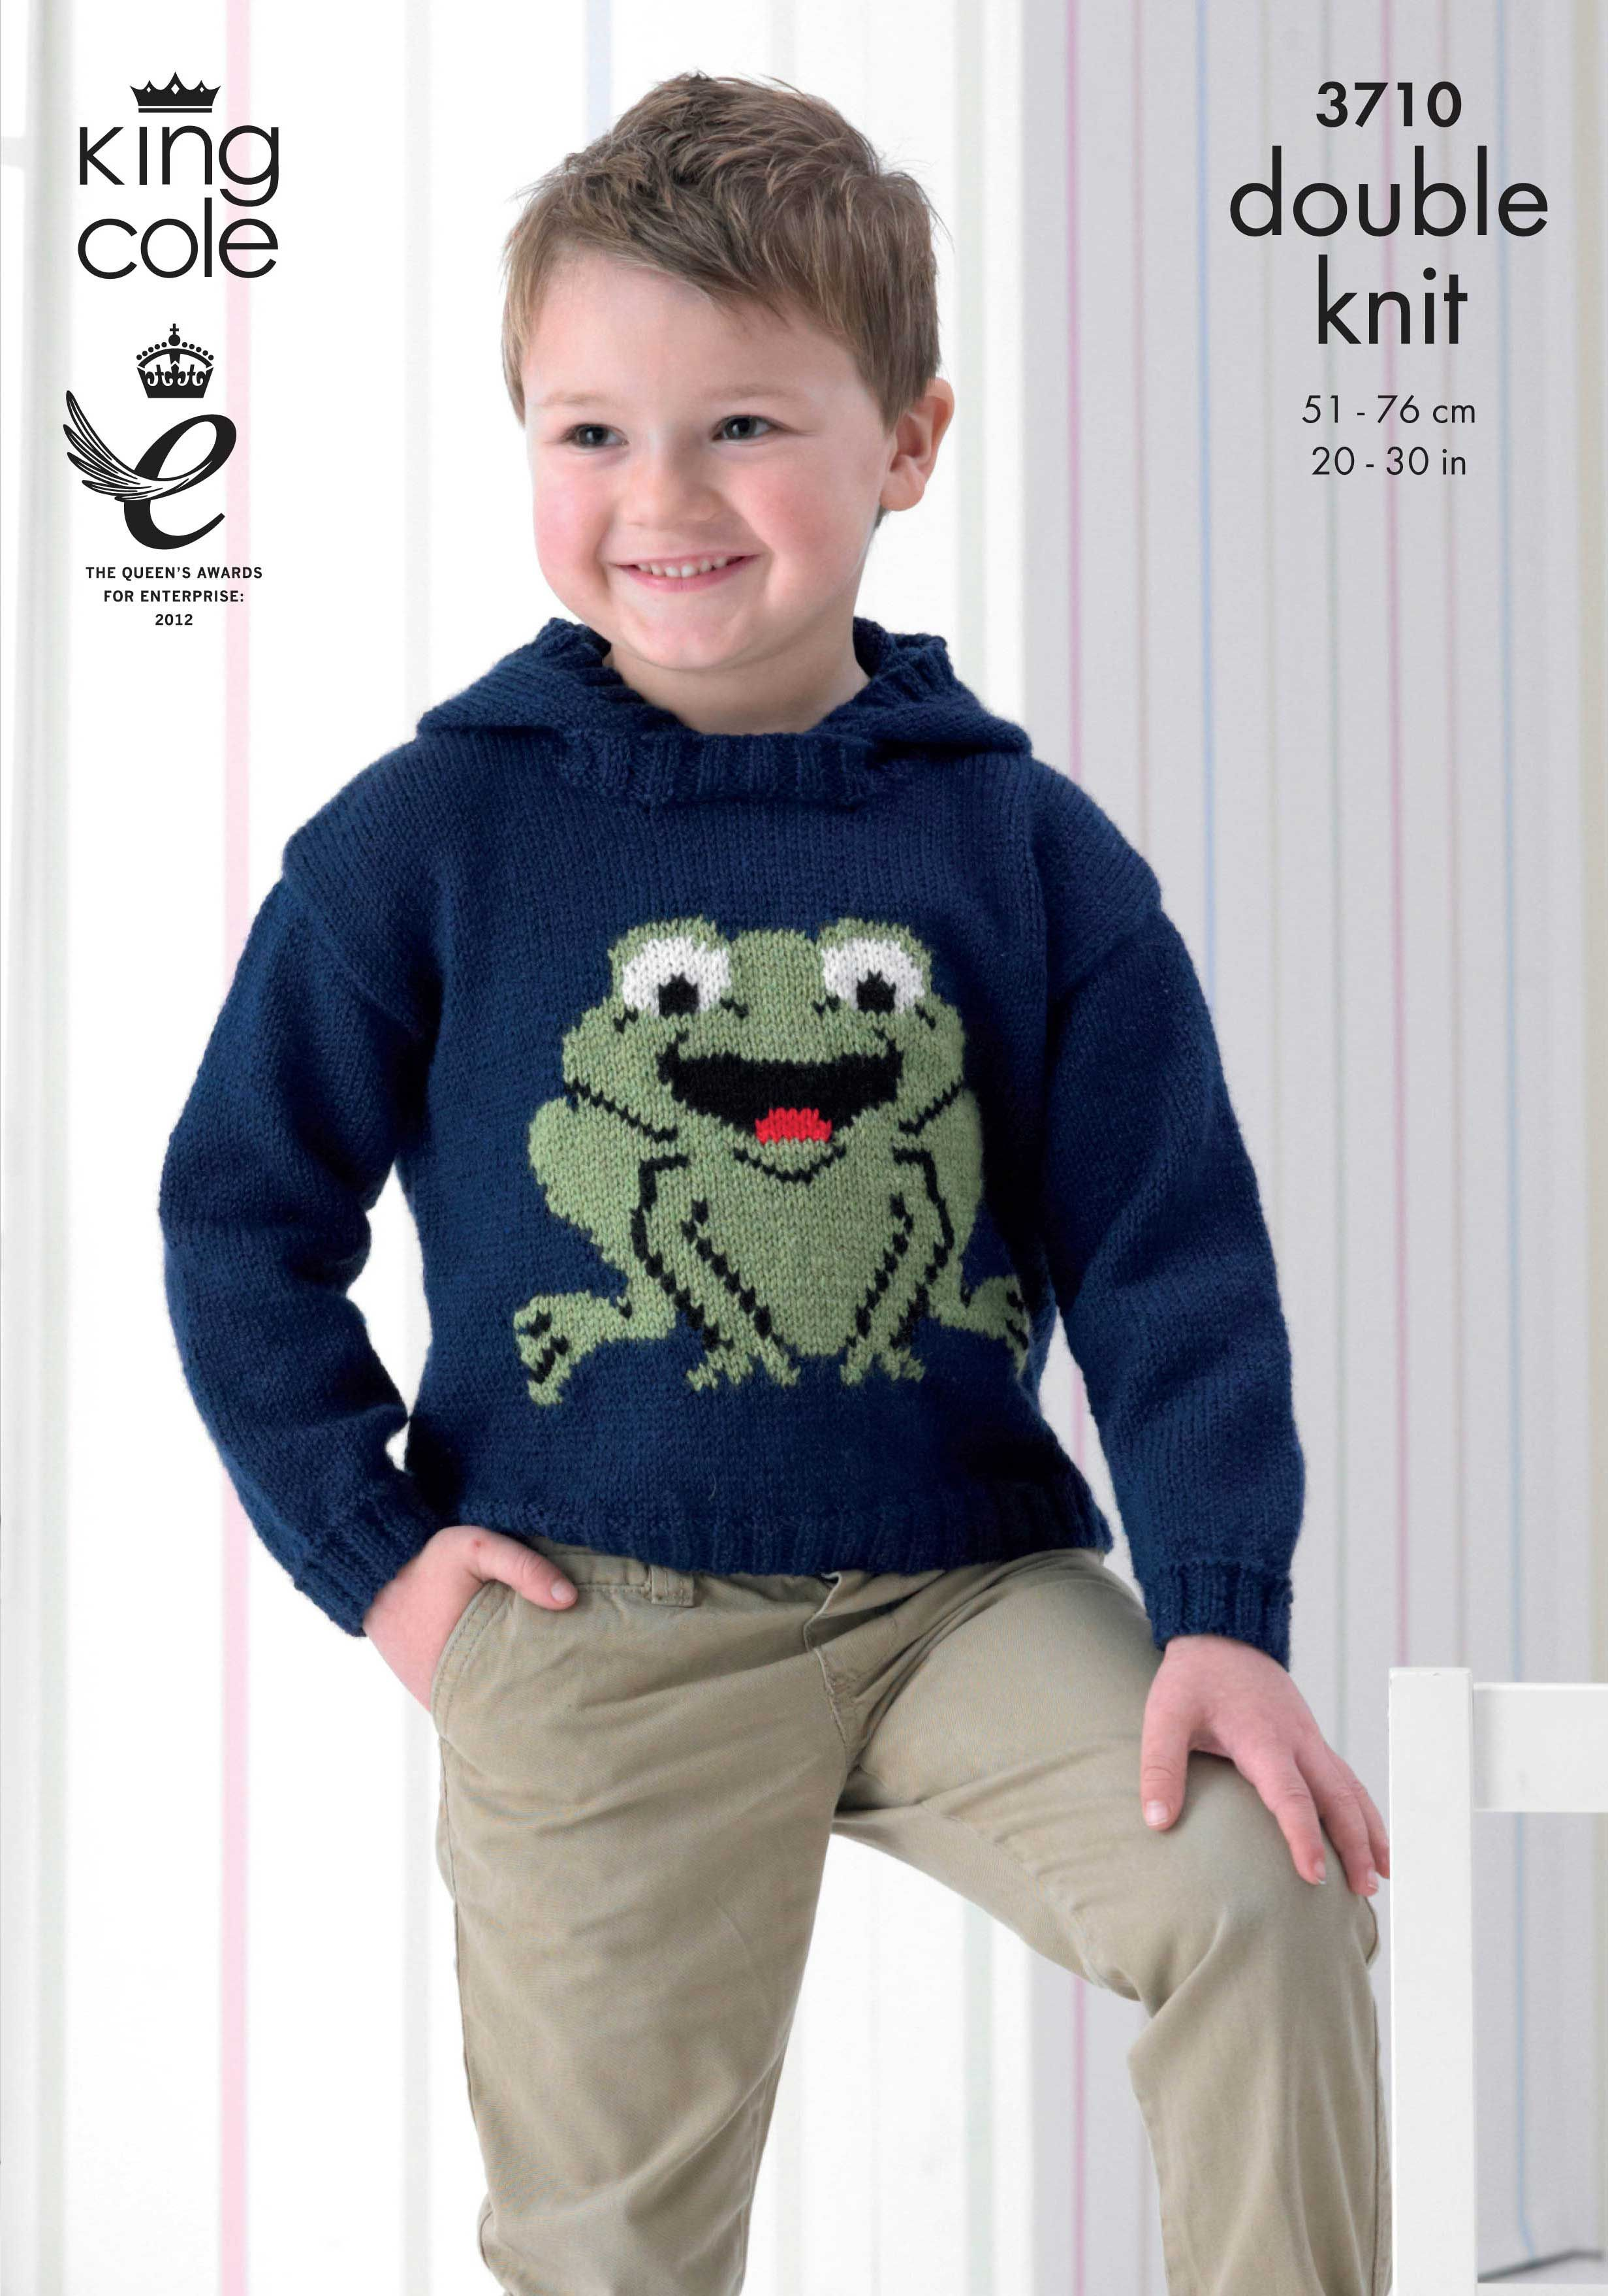 Childrens Knitted Frog Sweaters - King Cole | Pricewise DK ...